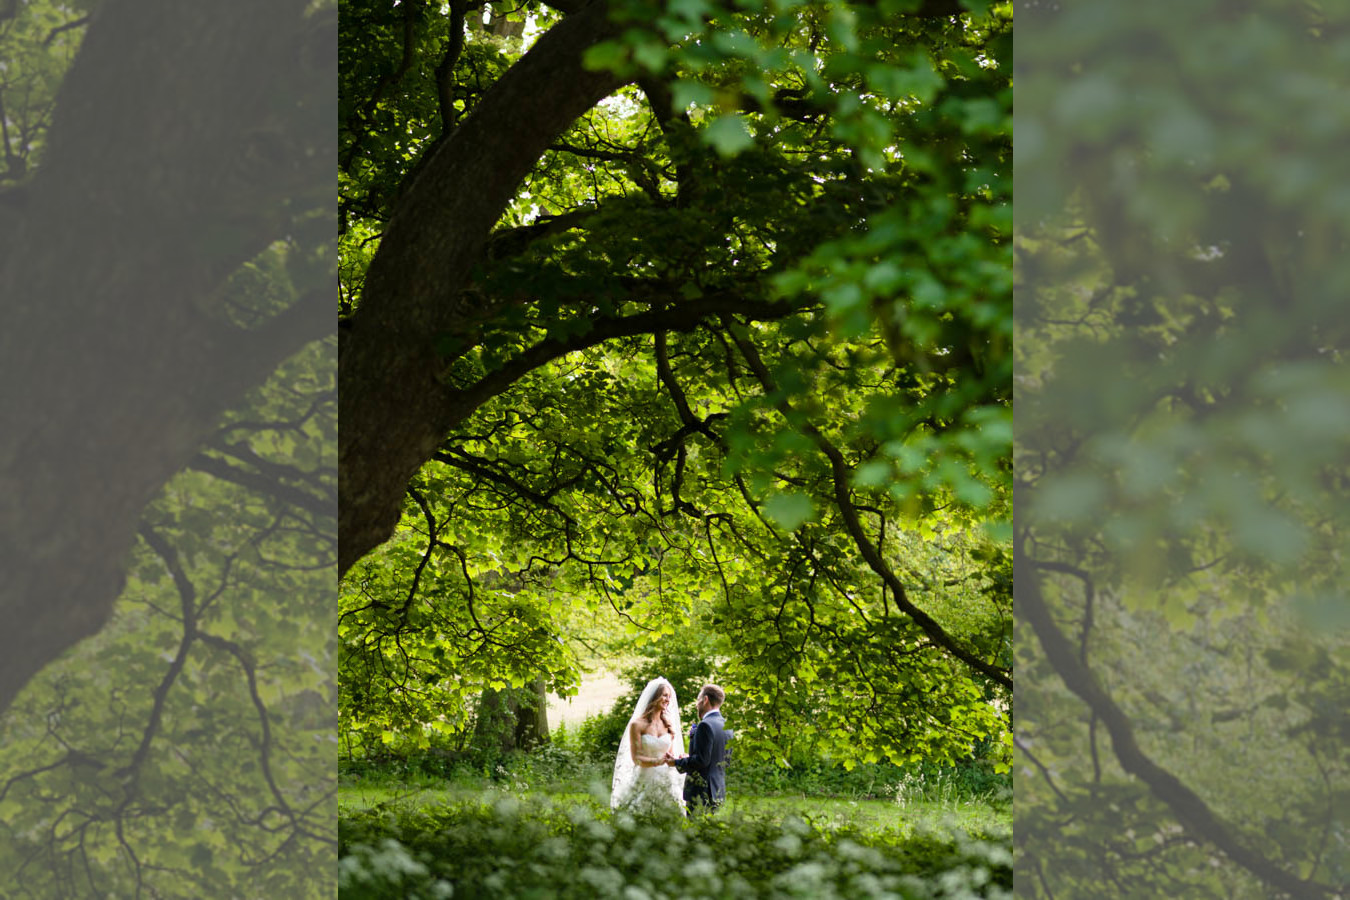 South West | Somerset | Frome | Summer | Classic | Outdoor | Blue | White | Country House | Real Wedding | Chris Giles Photography #Bridebook #RealWedding #WeddingIdeas Bridebook.co.uk